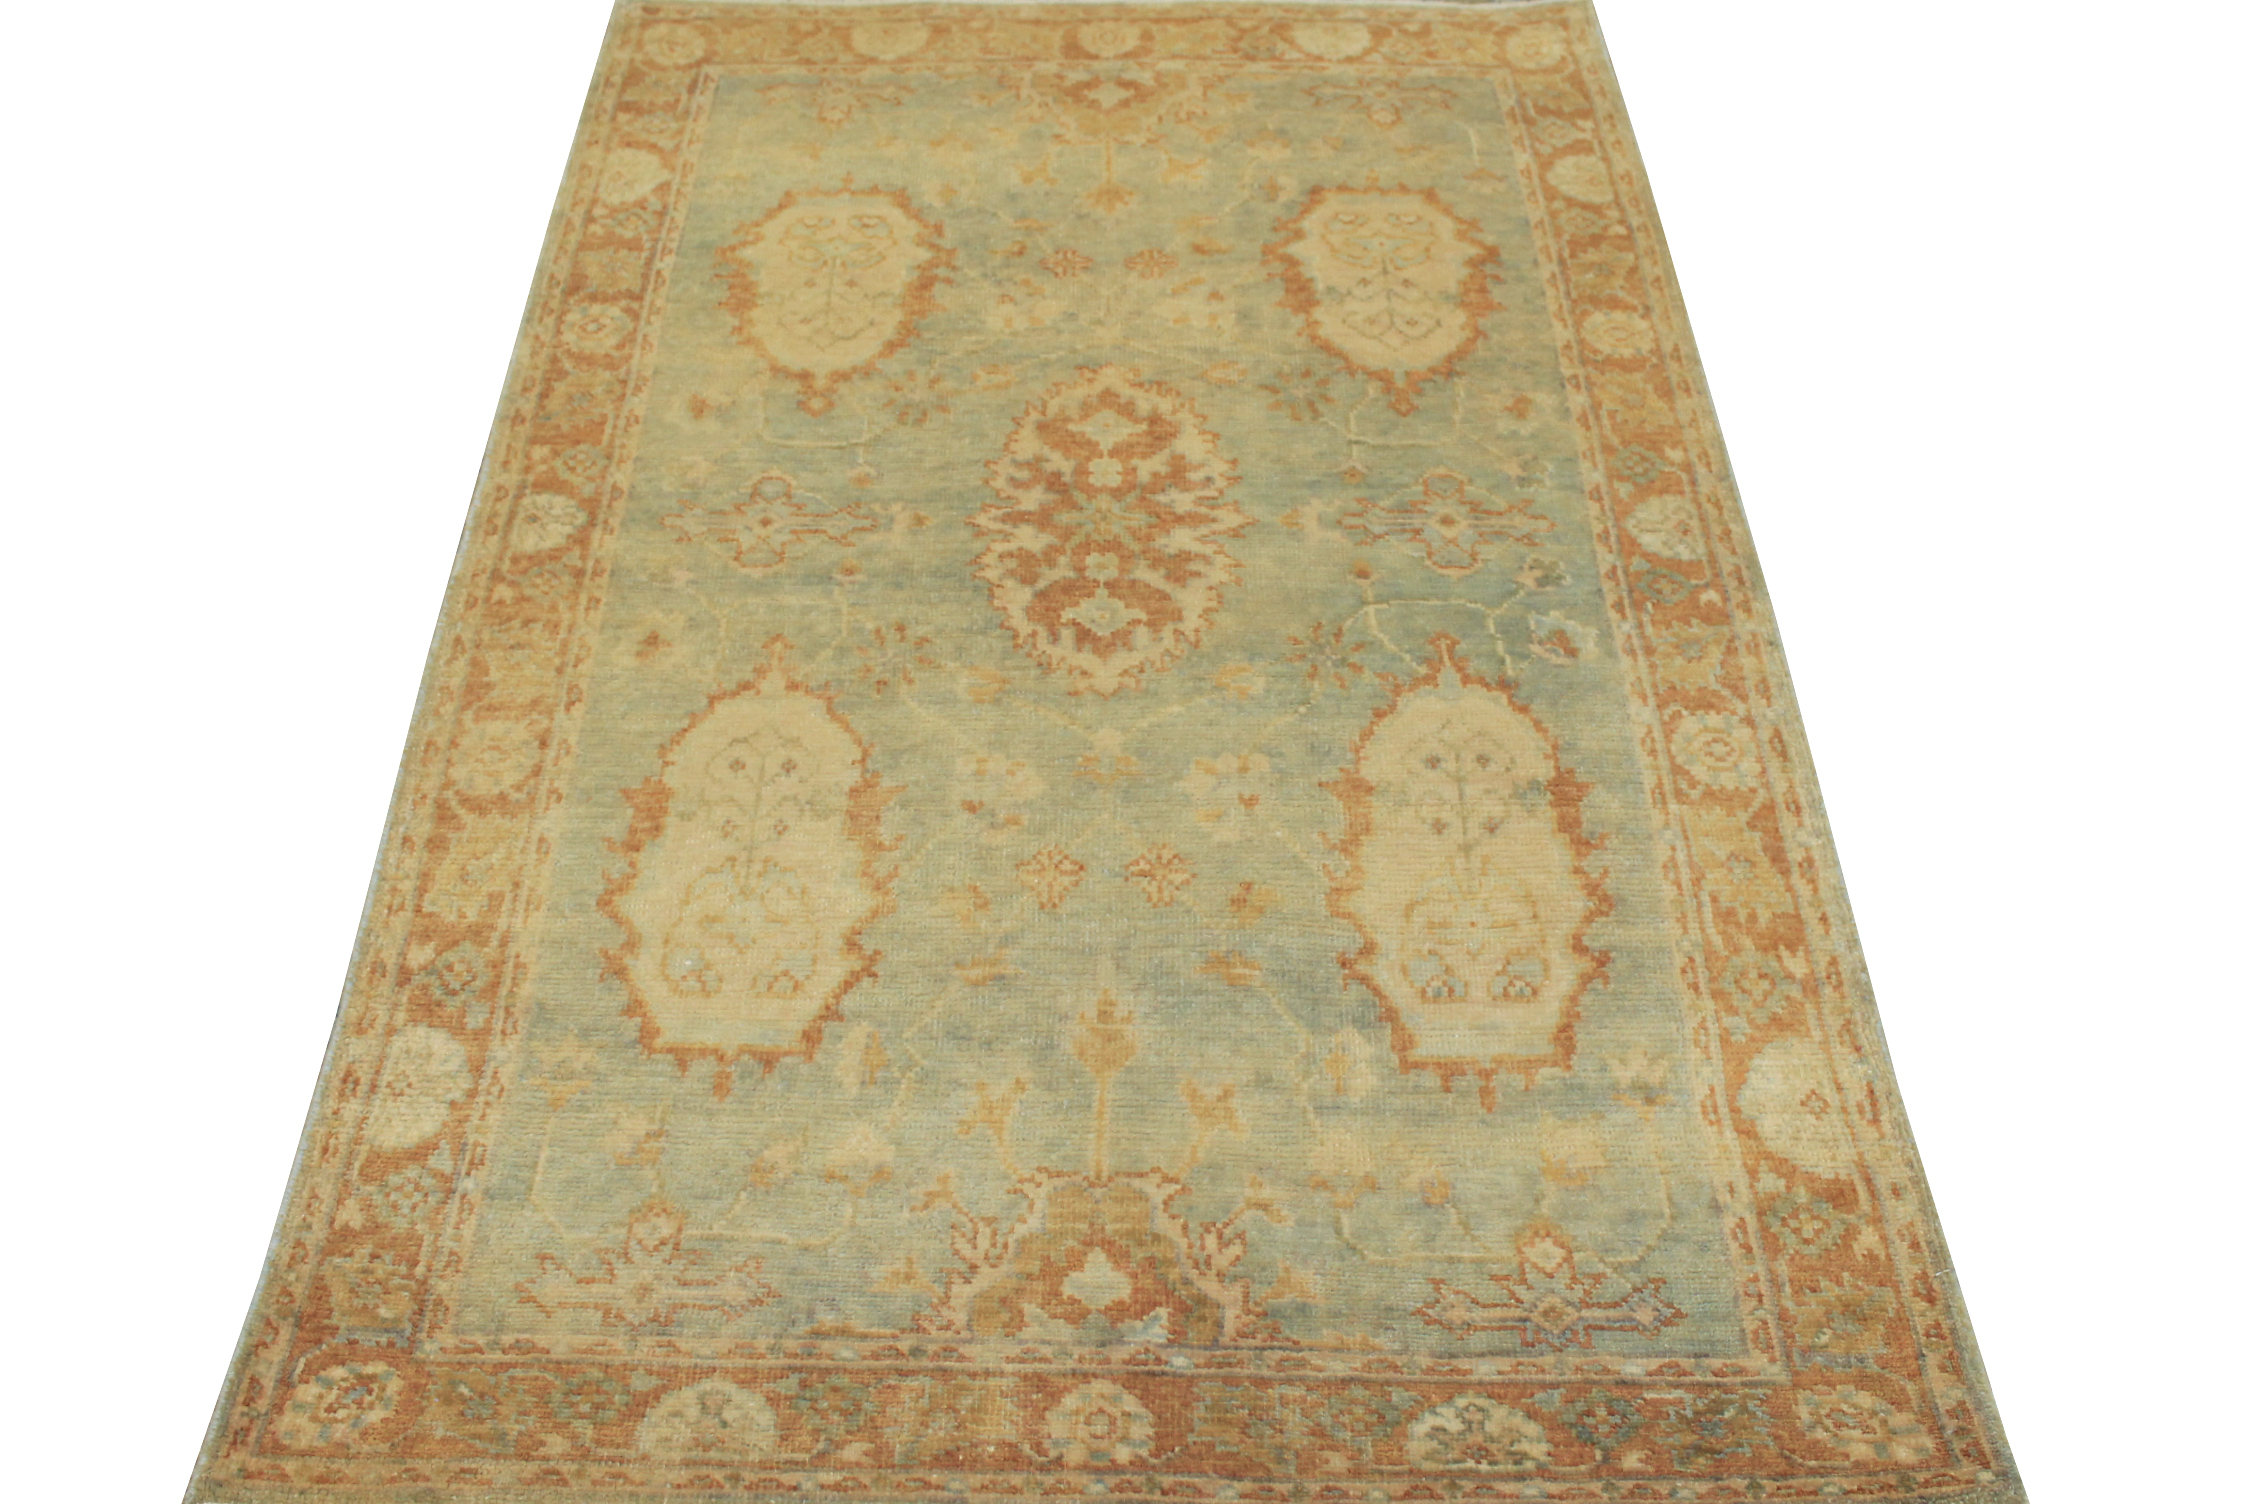 4x6 Oushak Hand Knotted Wool Area Rug - MR14865